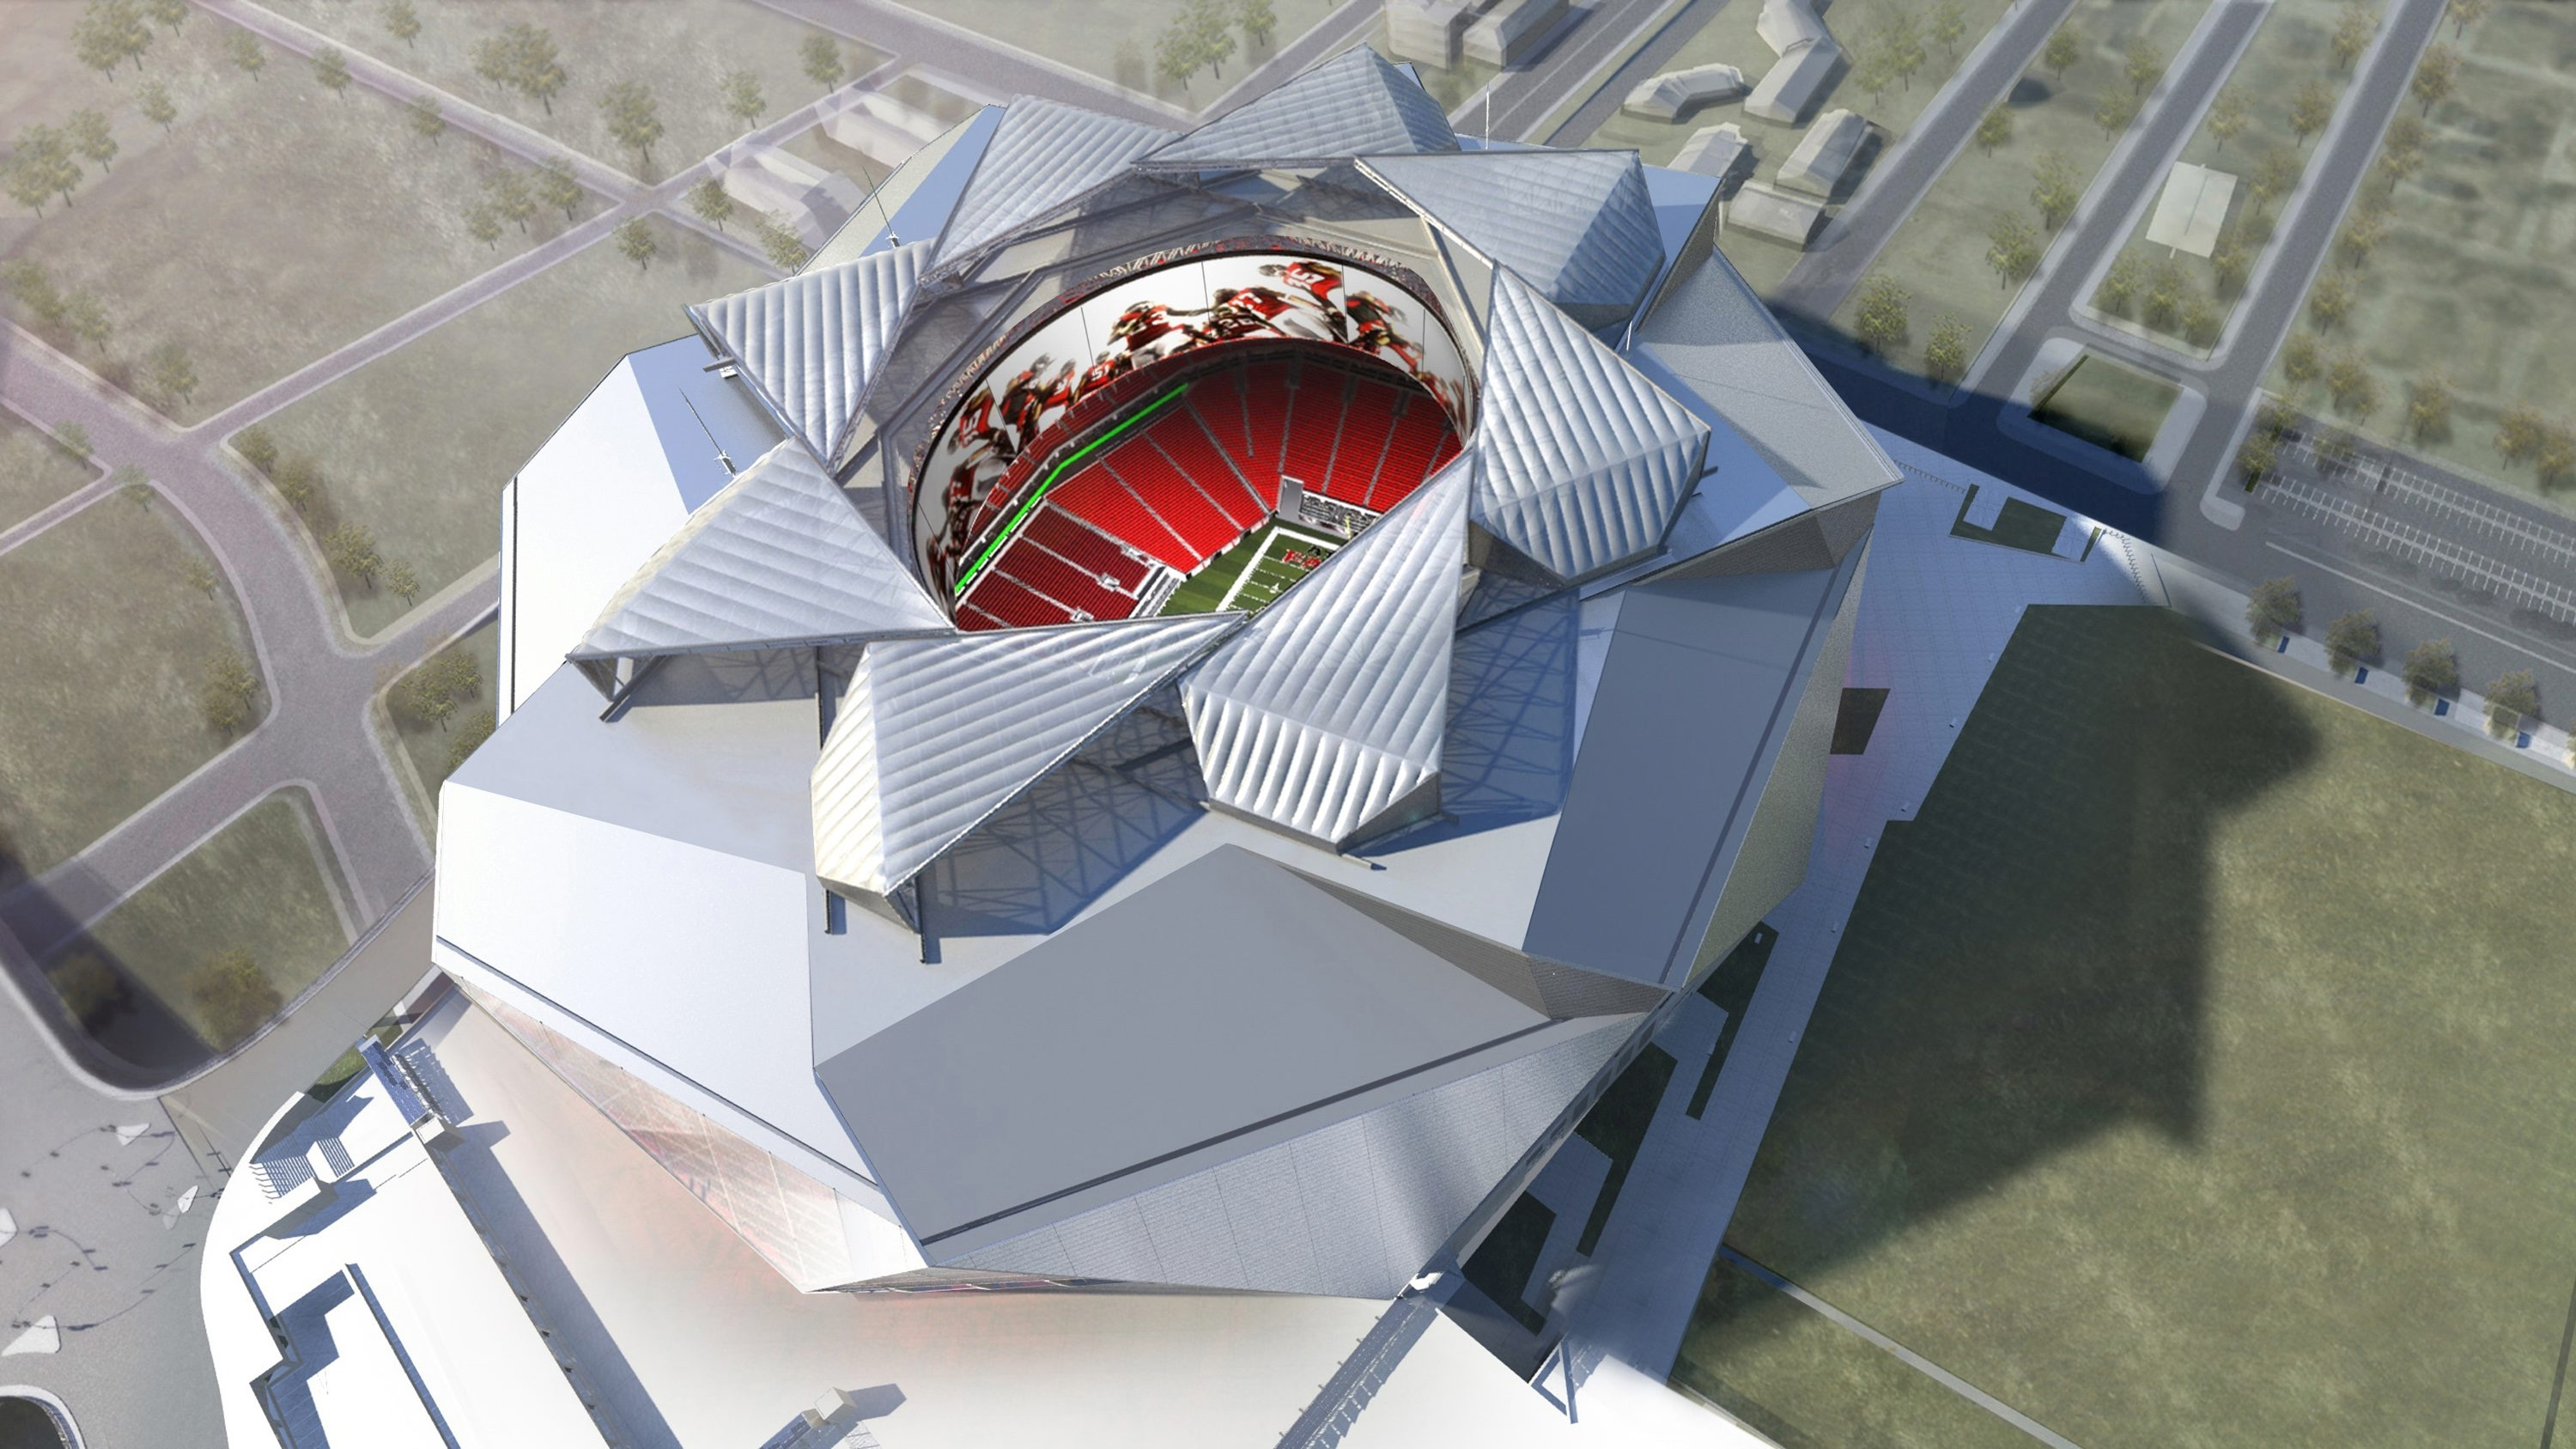 Retractable roof for new Atlanta stadium designed by Amherst-based Birdair.